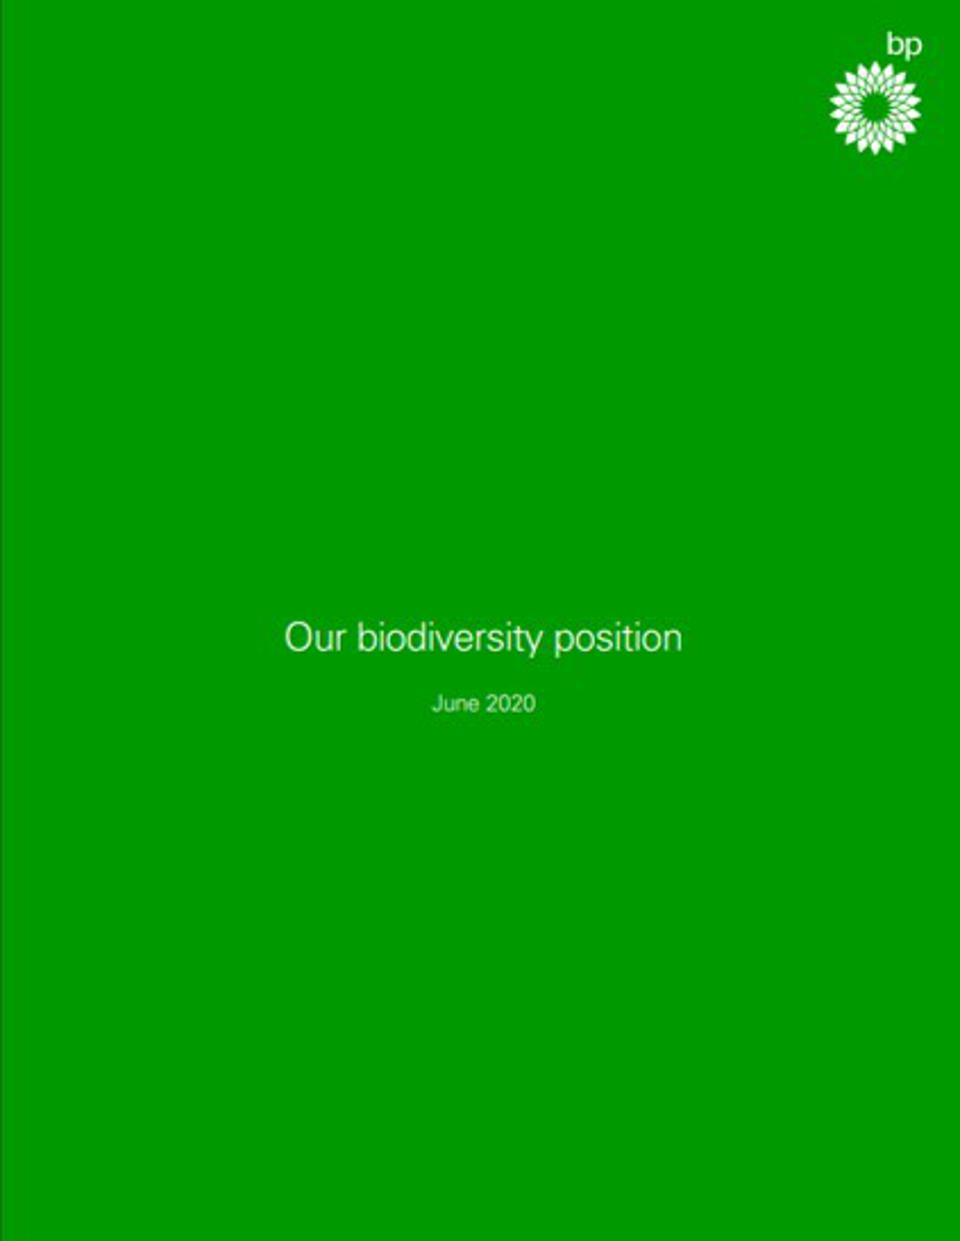 The cover of BP's new biodiversity position, issued on June 2020